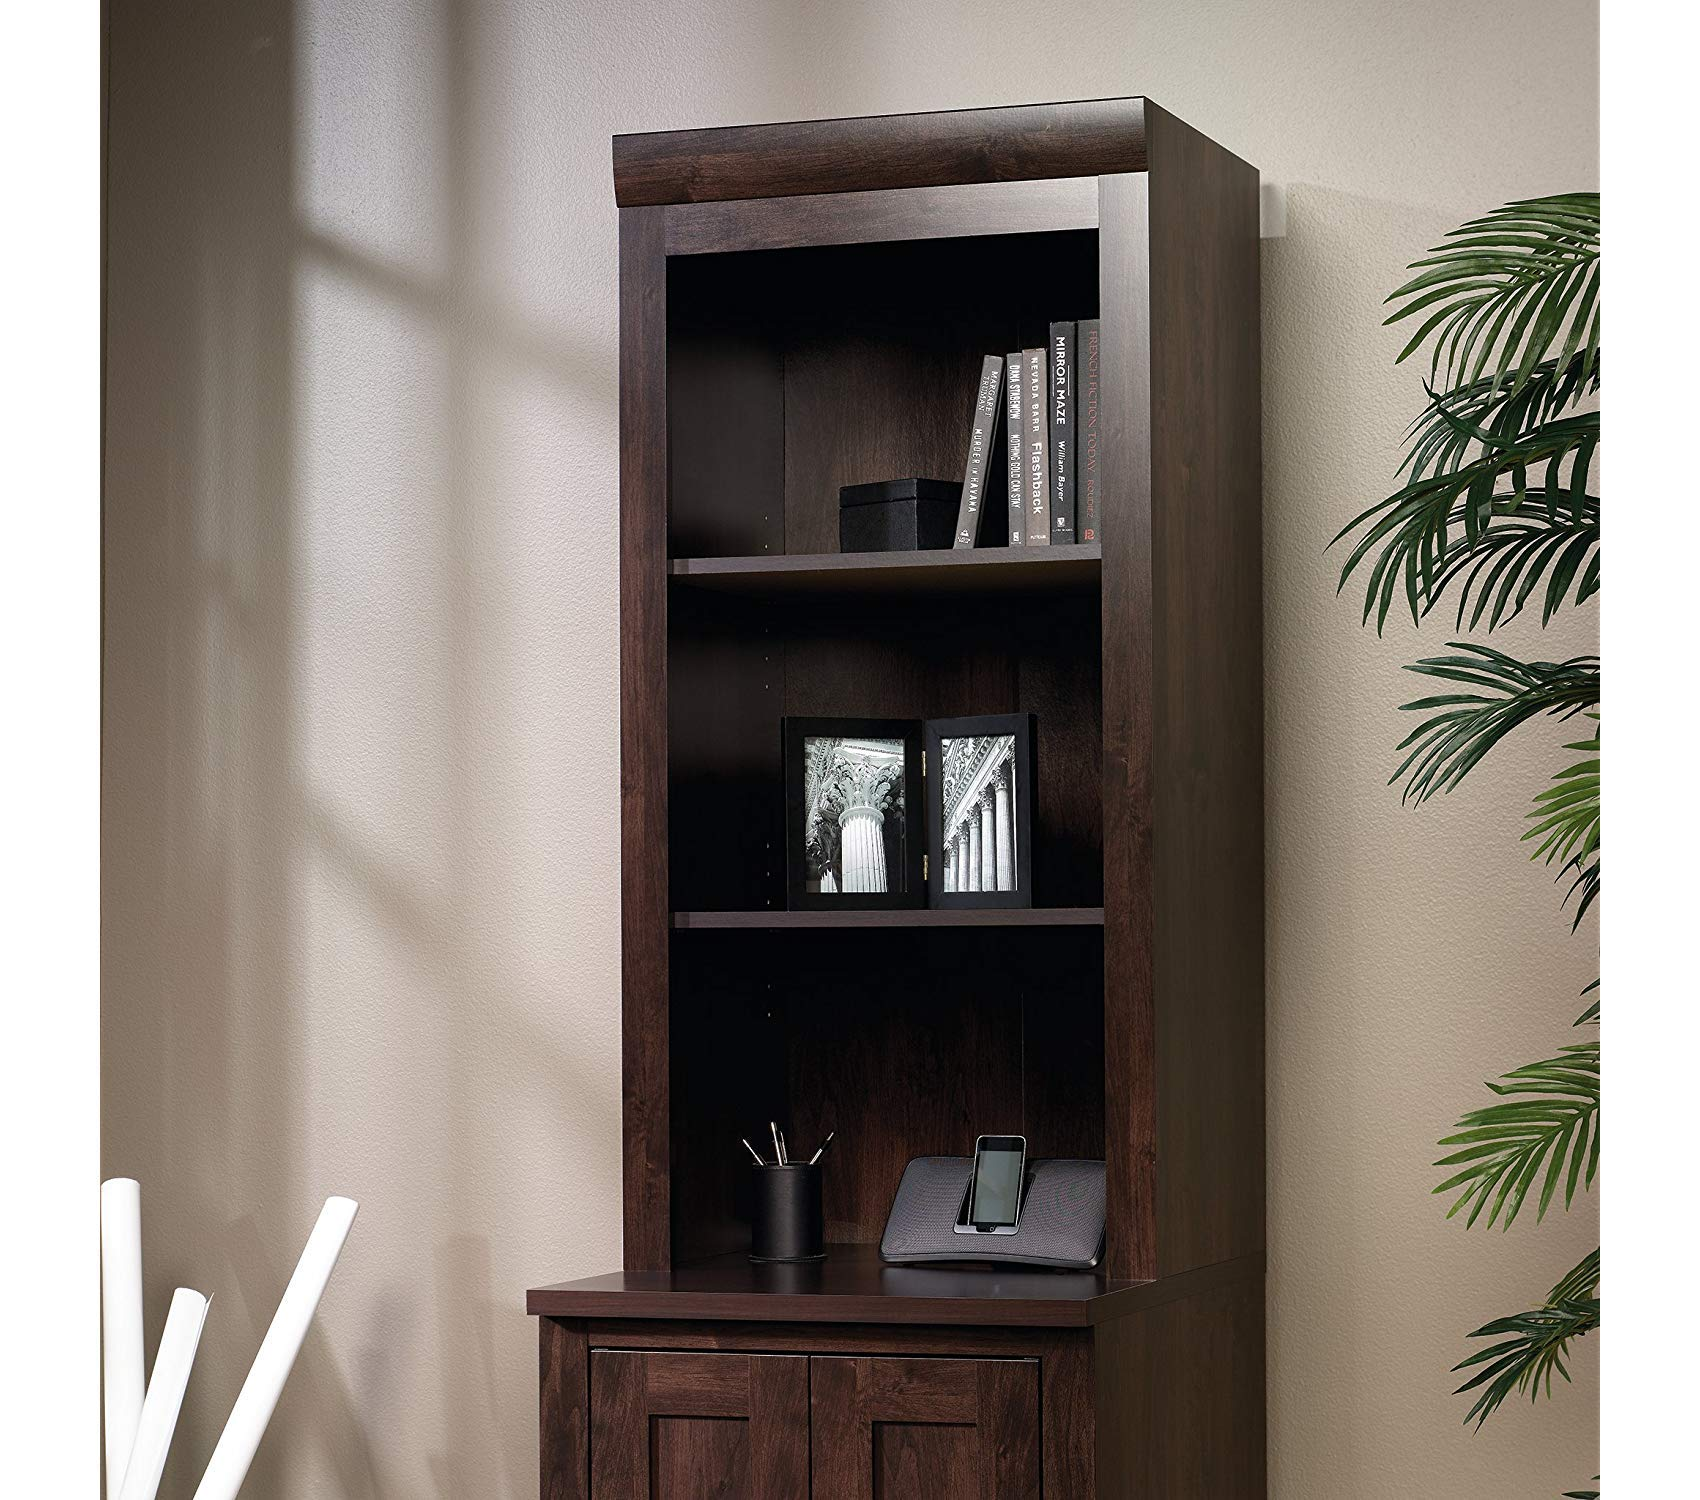 Sаudеr Deluxe Premium Collection Office Port Hutch L: 23.39'' x W: 15.63'' x H: 47.17'' Dark Alder Finish Decor Comfy Living Furniture by Sаudеr (Image #2)